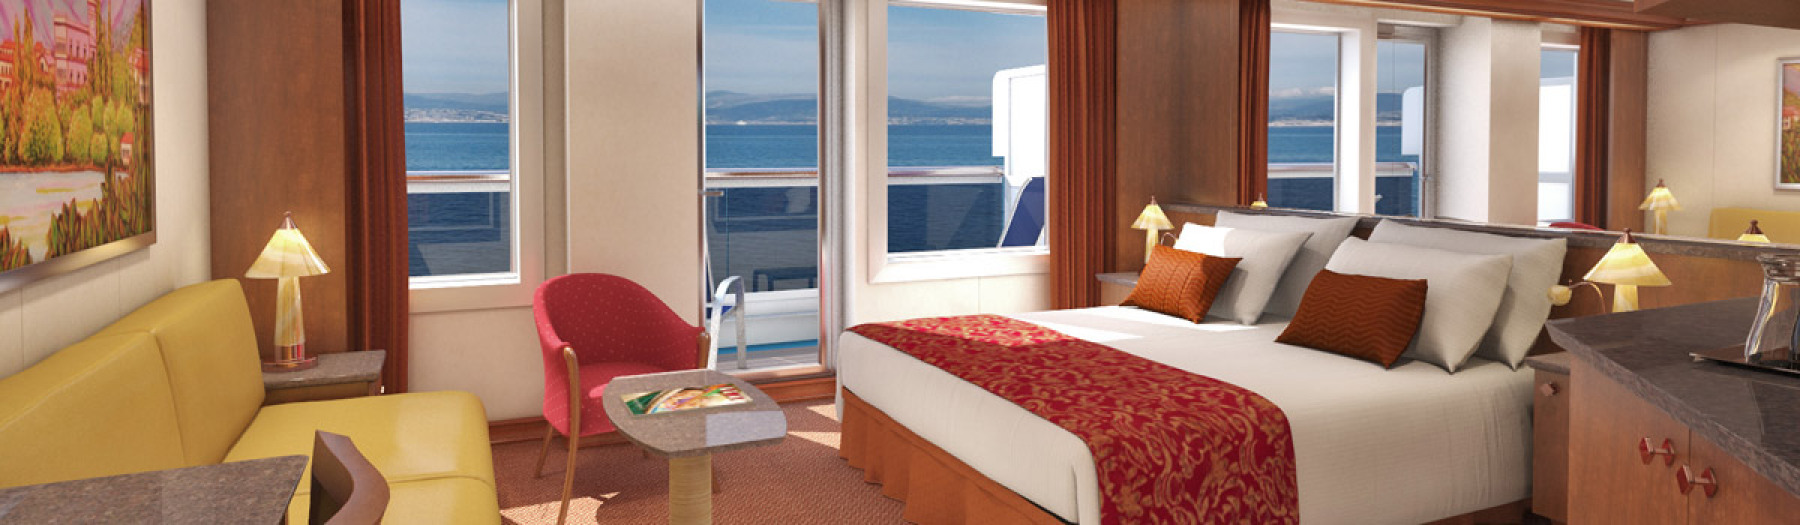 Carnival Cruise Lines Carnival Dream AccommodationOcean Suite.jpg